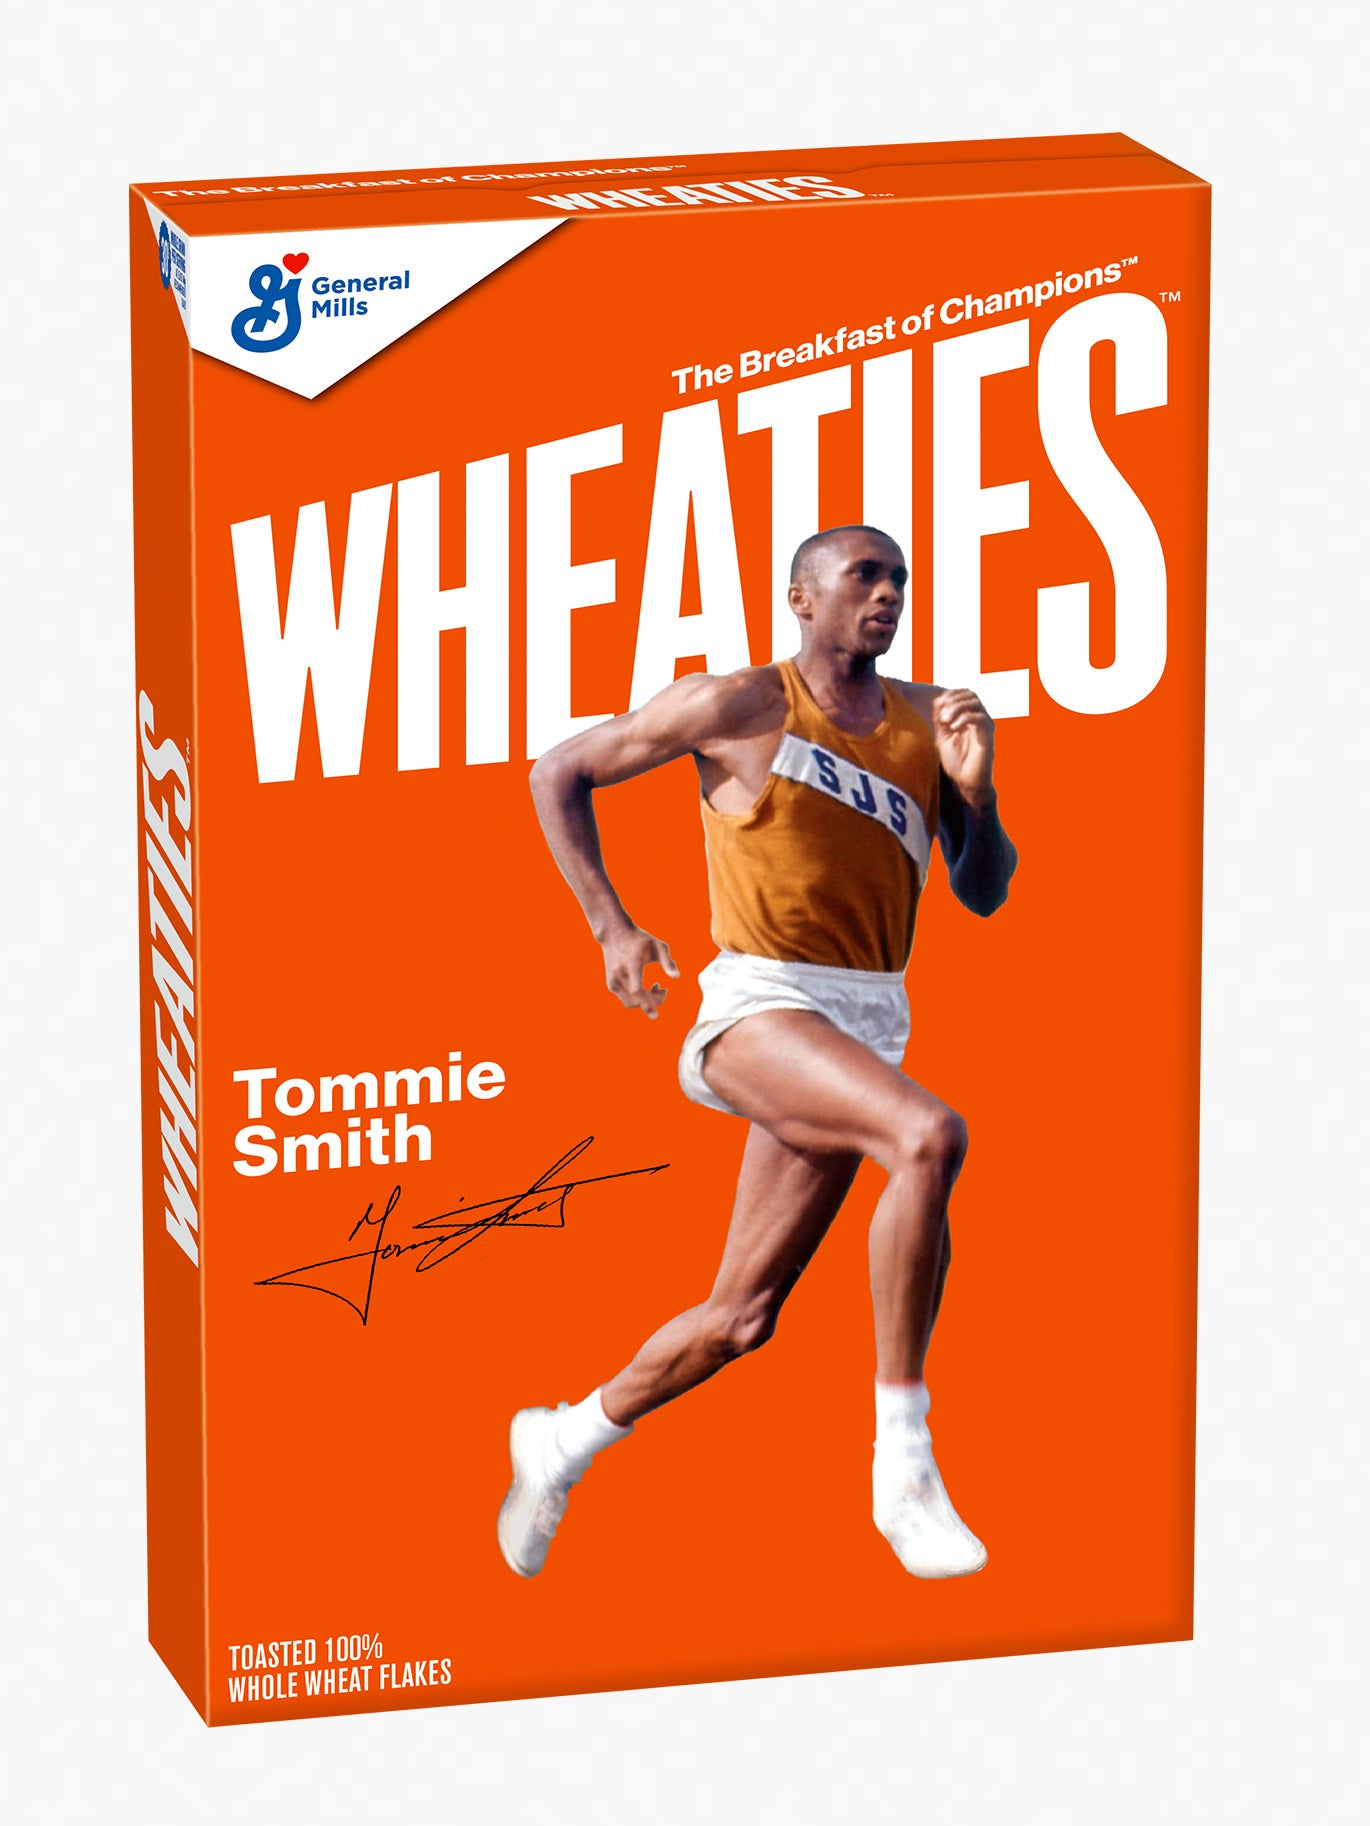 Tommie Smith 1968 Wheaties Box